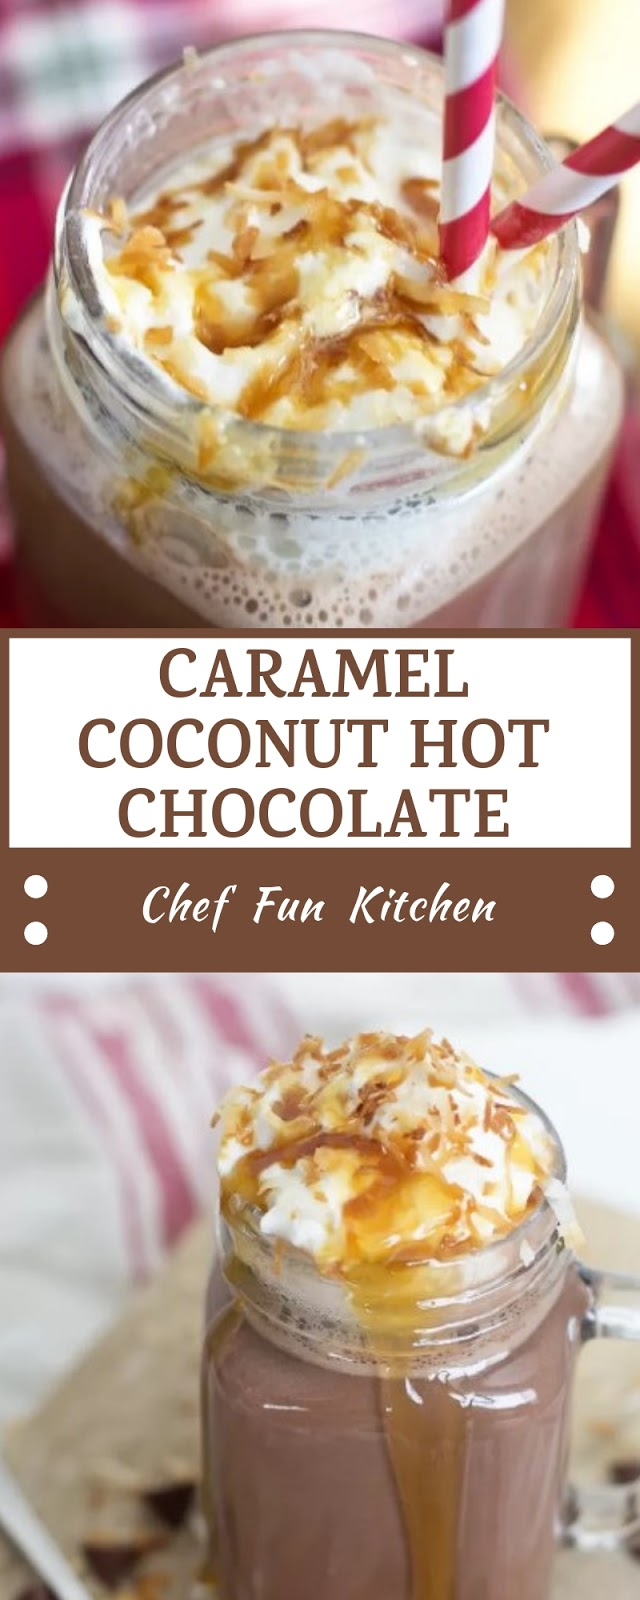 CARAMEL COCONUT HOT CHOCOLATE